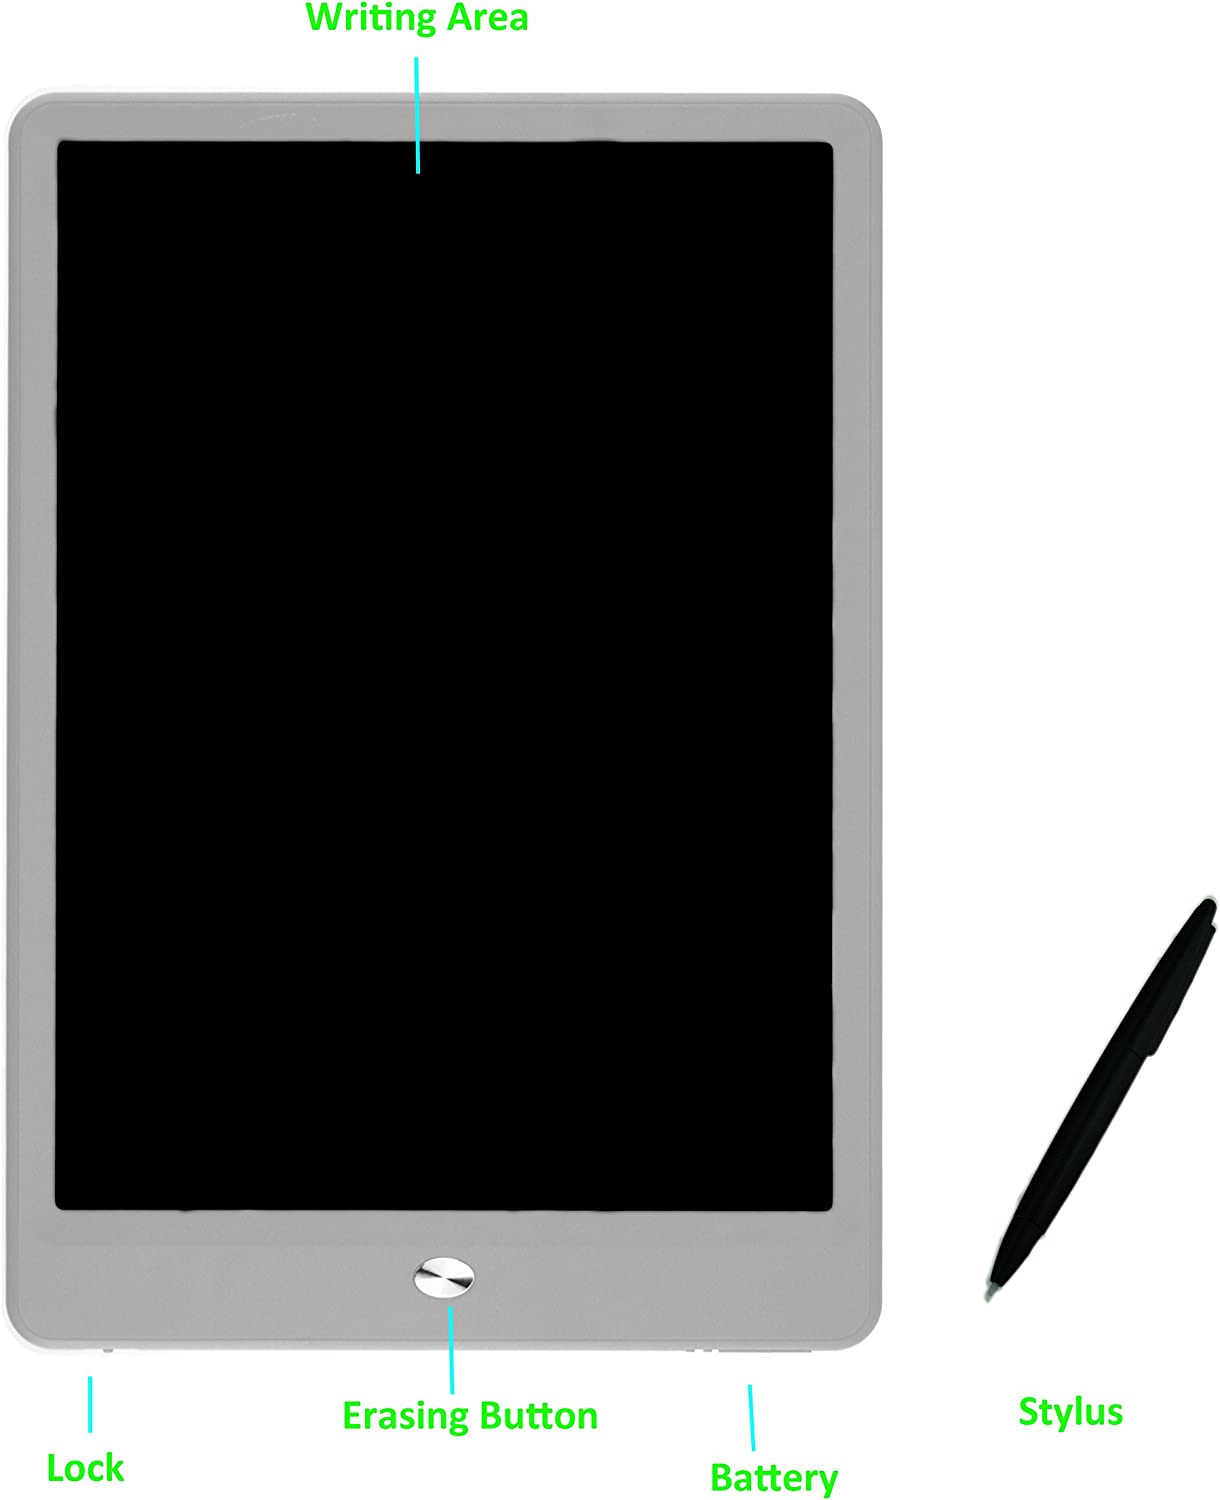 for Inkless Drawing or Paperless Sketching 8.5-inch High Contrast LCD eWriter Tablet 8.5-inch, Black